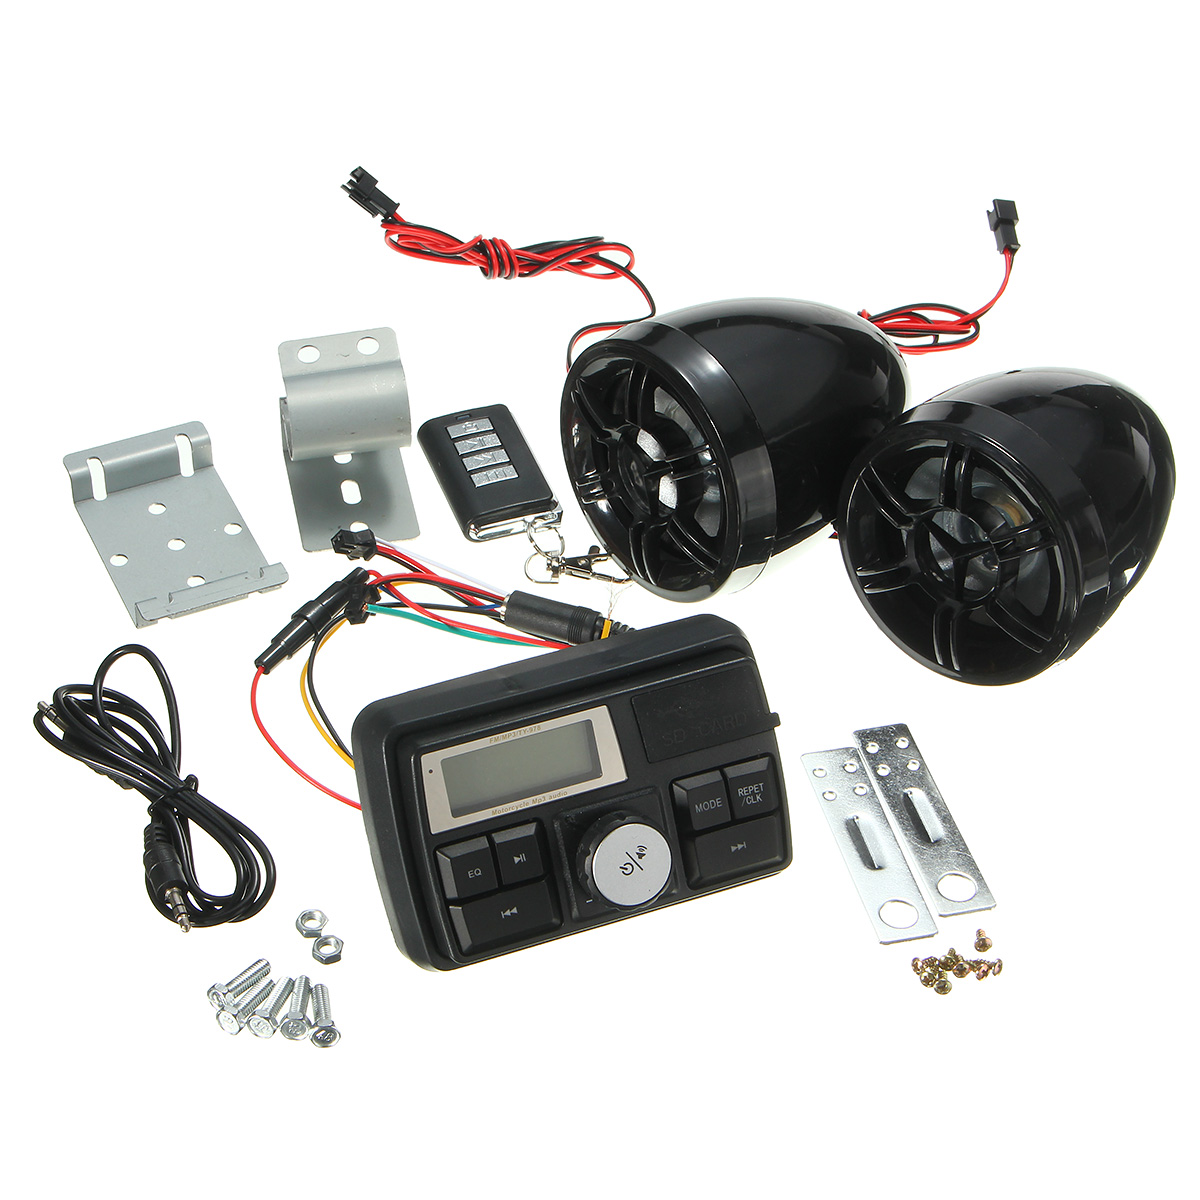 Motorcycle Handlebar Stereo System Radio Amplifier MP3 Speakers with bluetooth Function